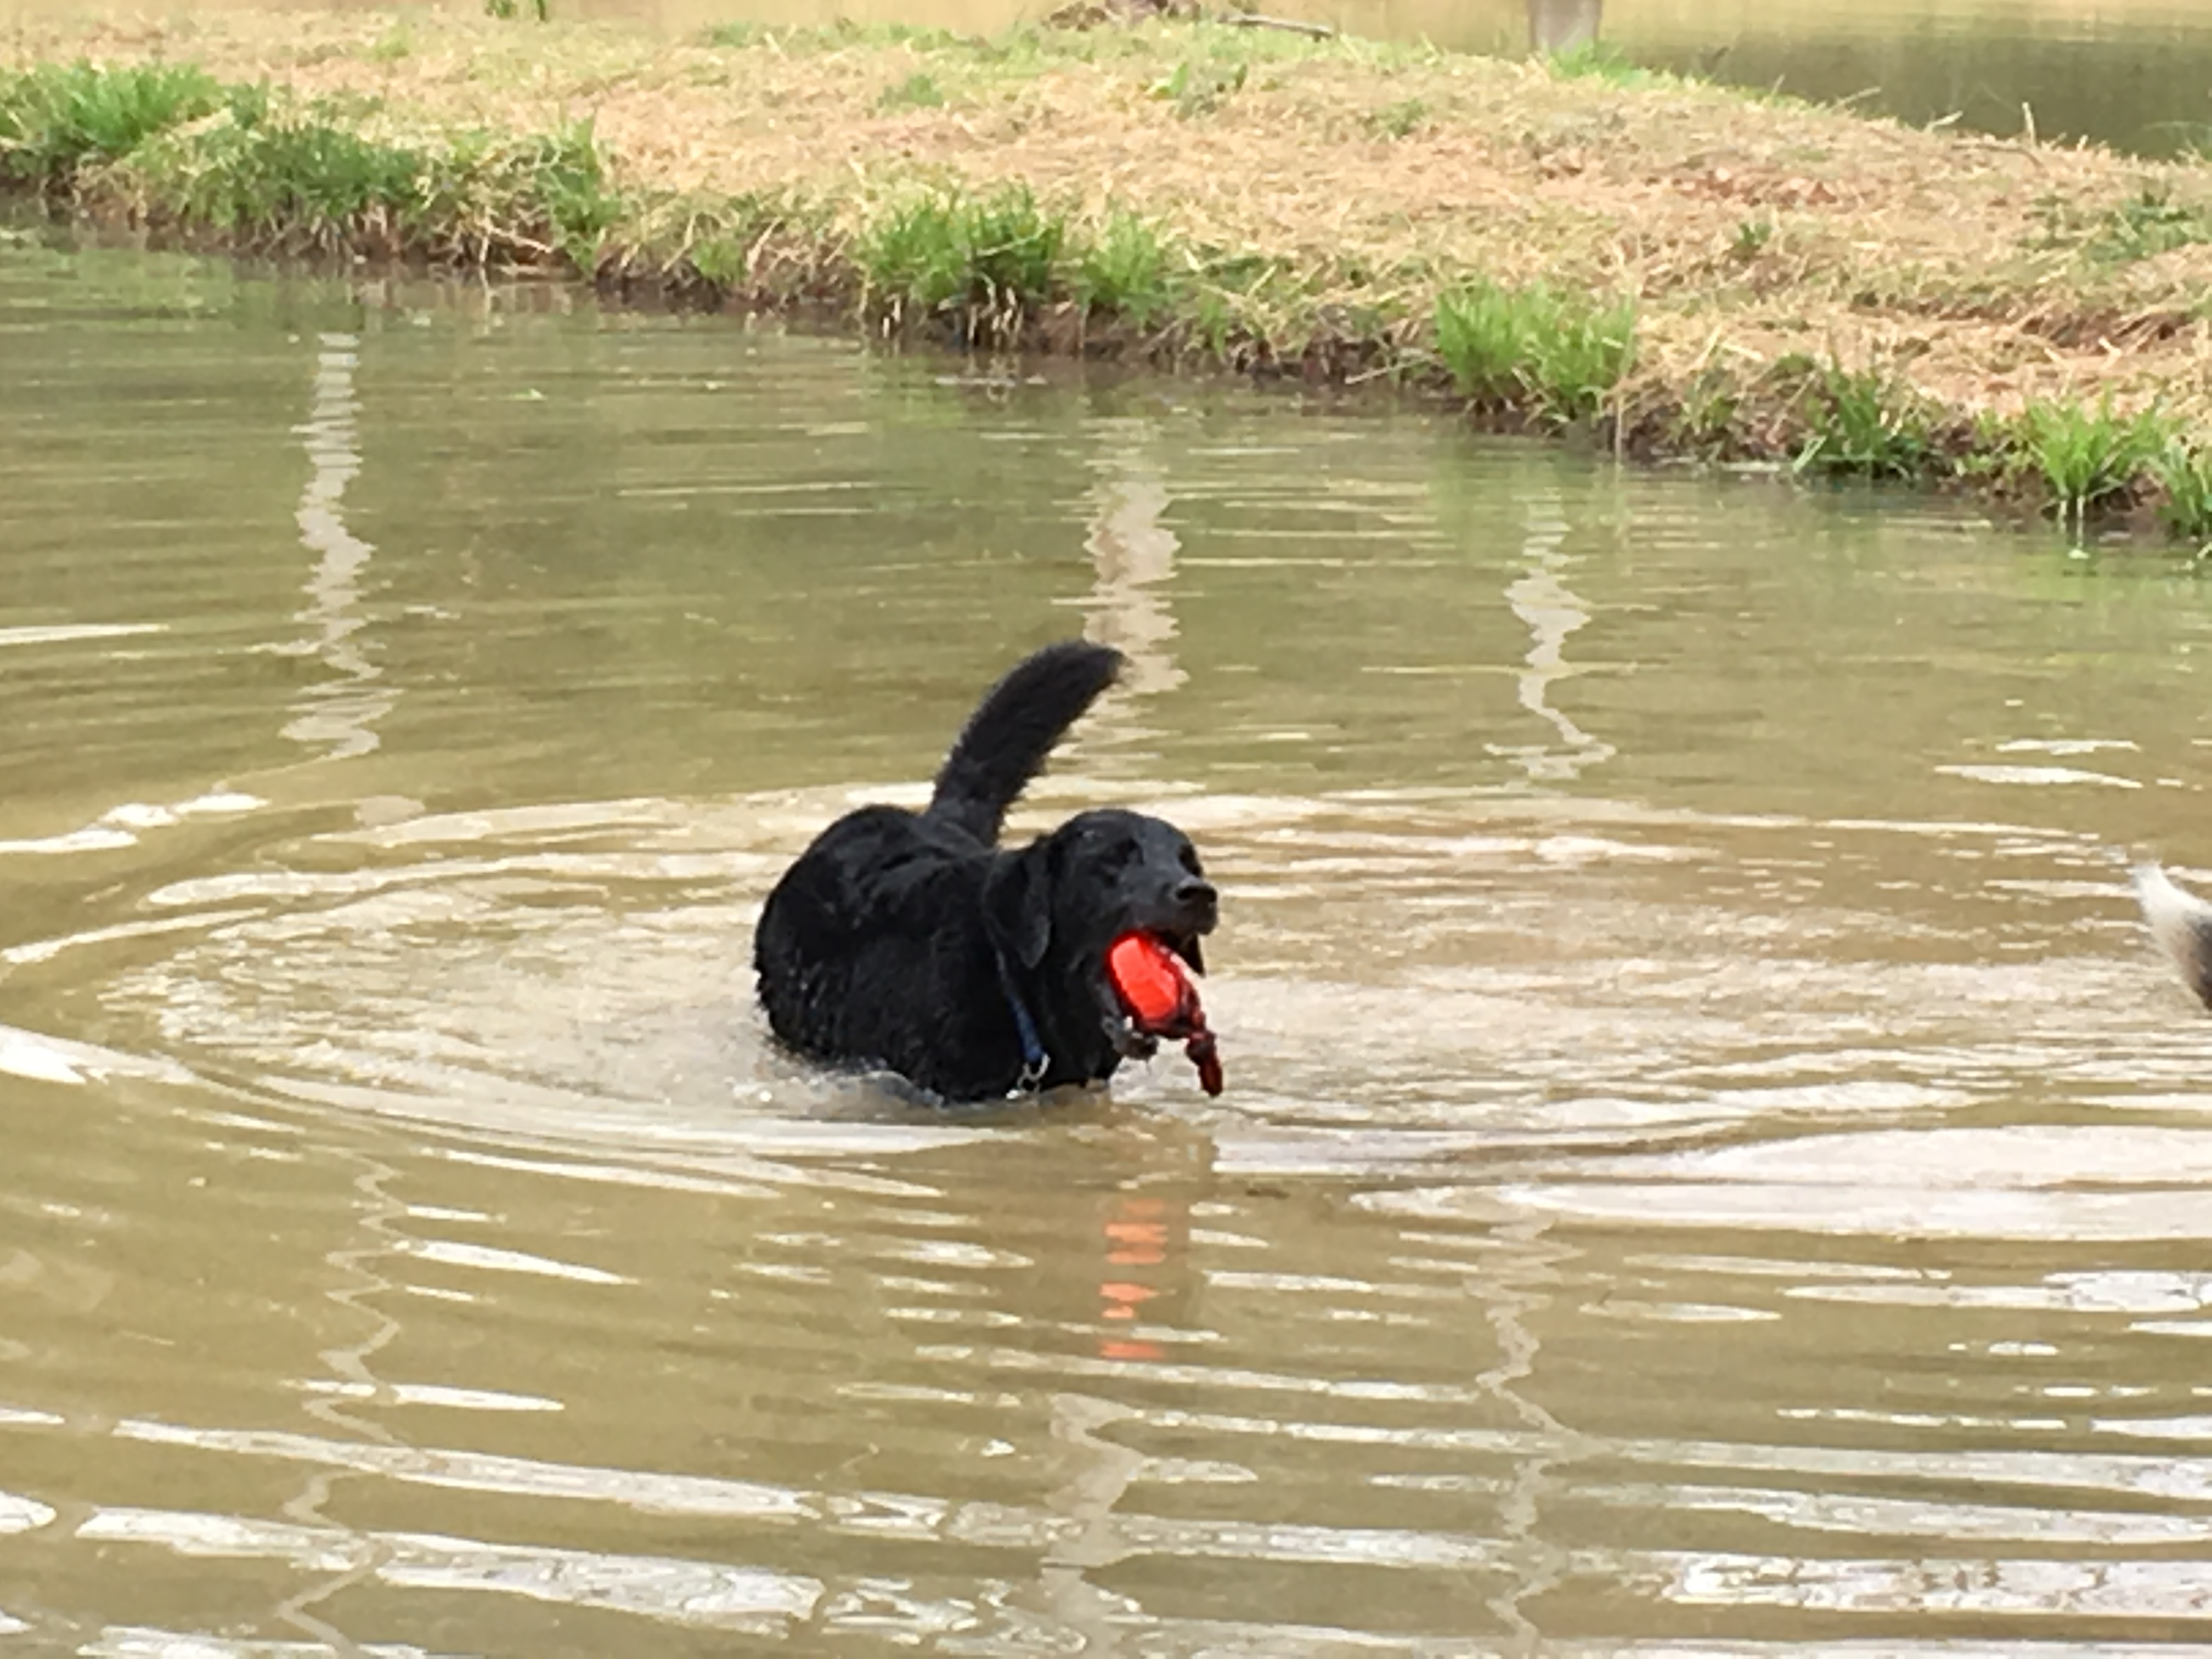 Dog chasing ball in pond